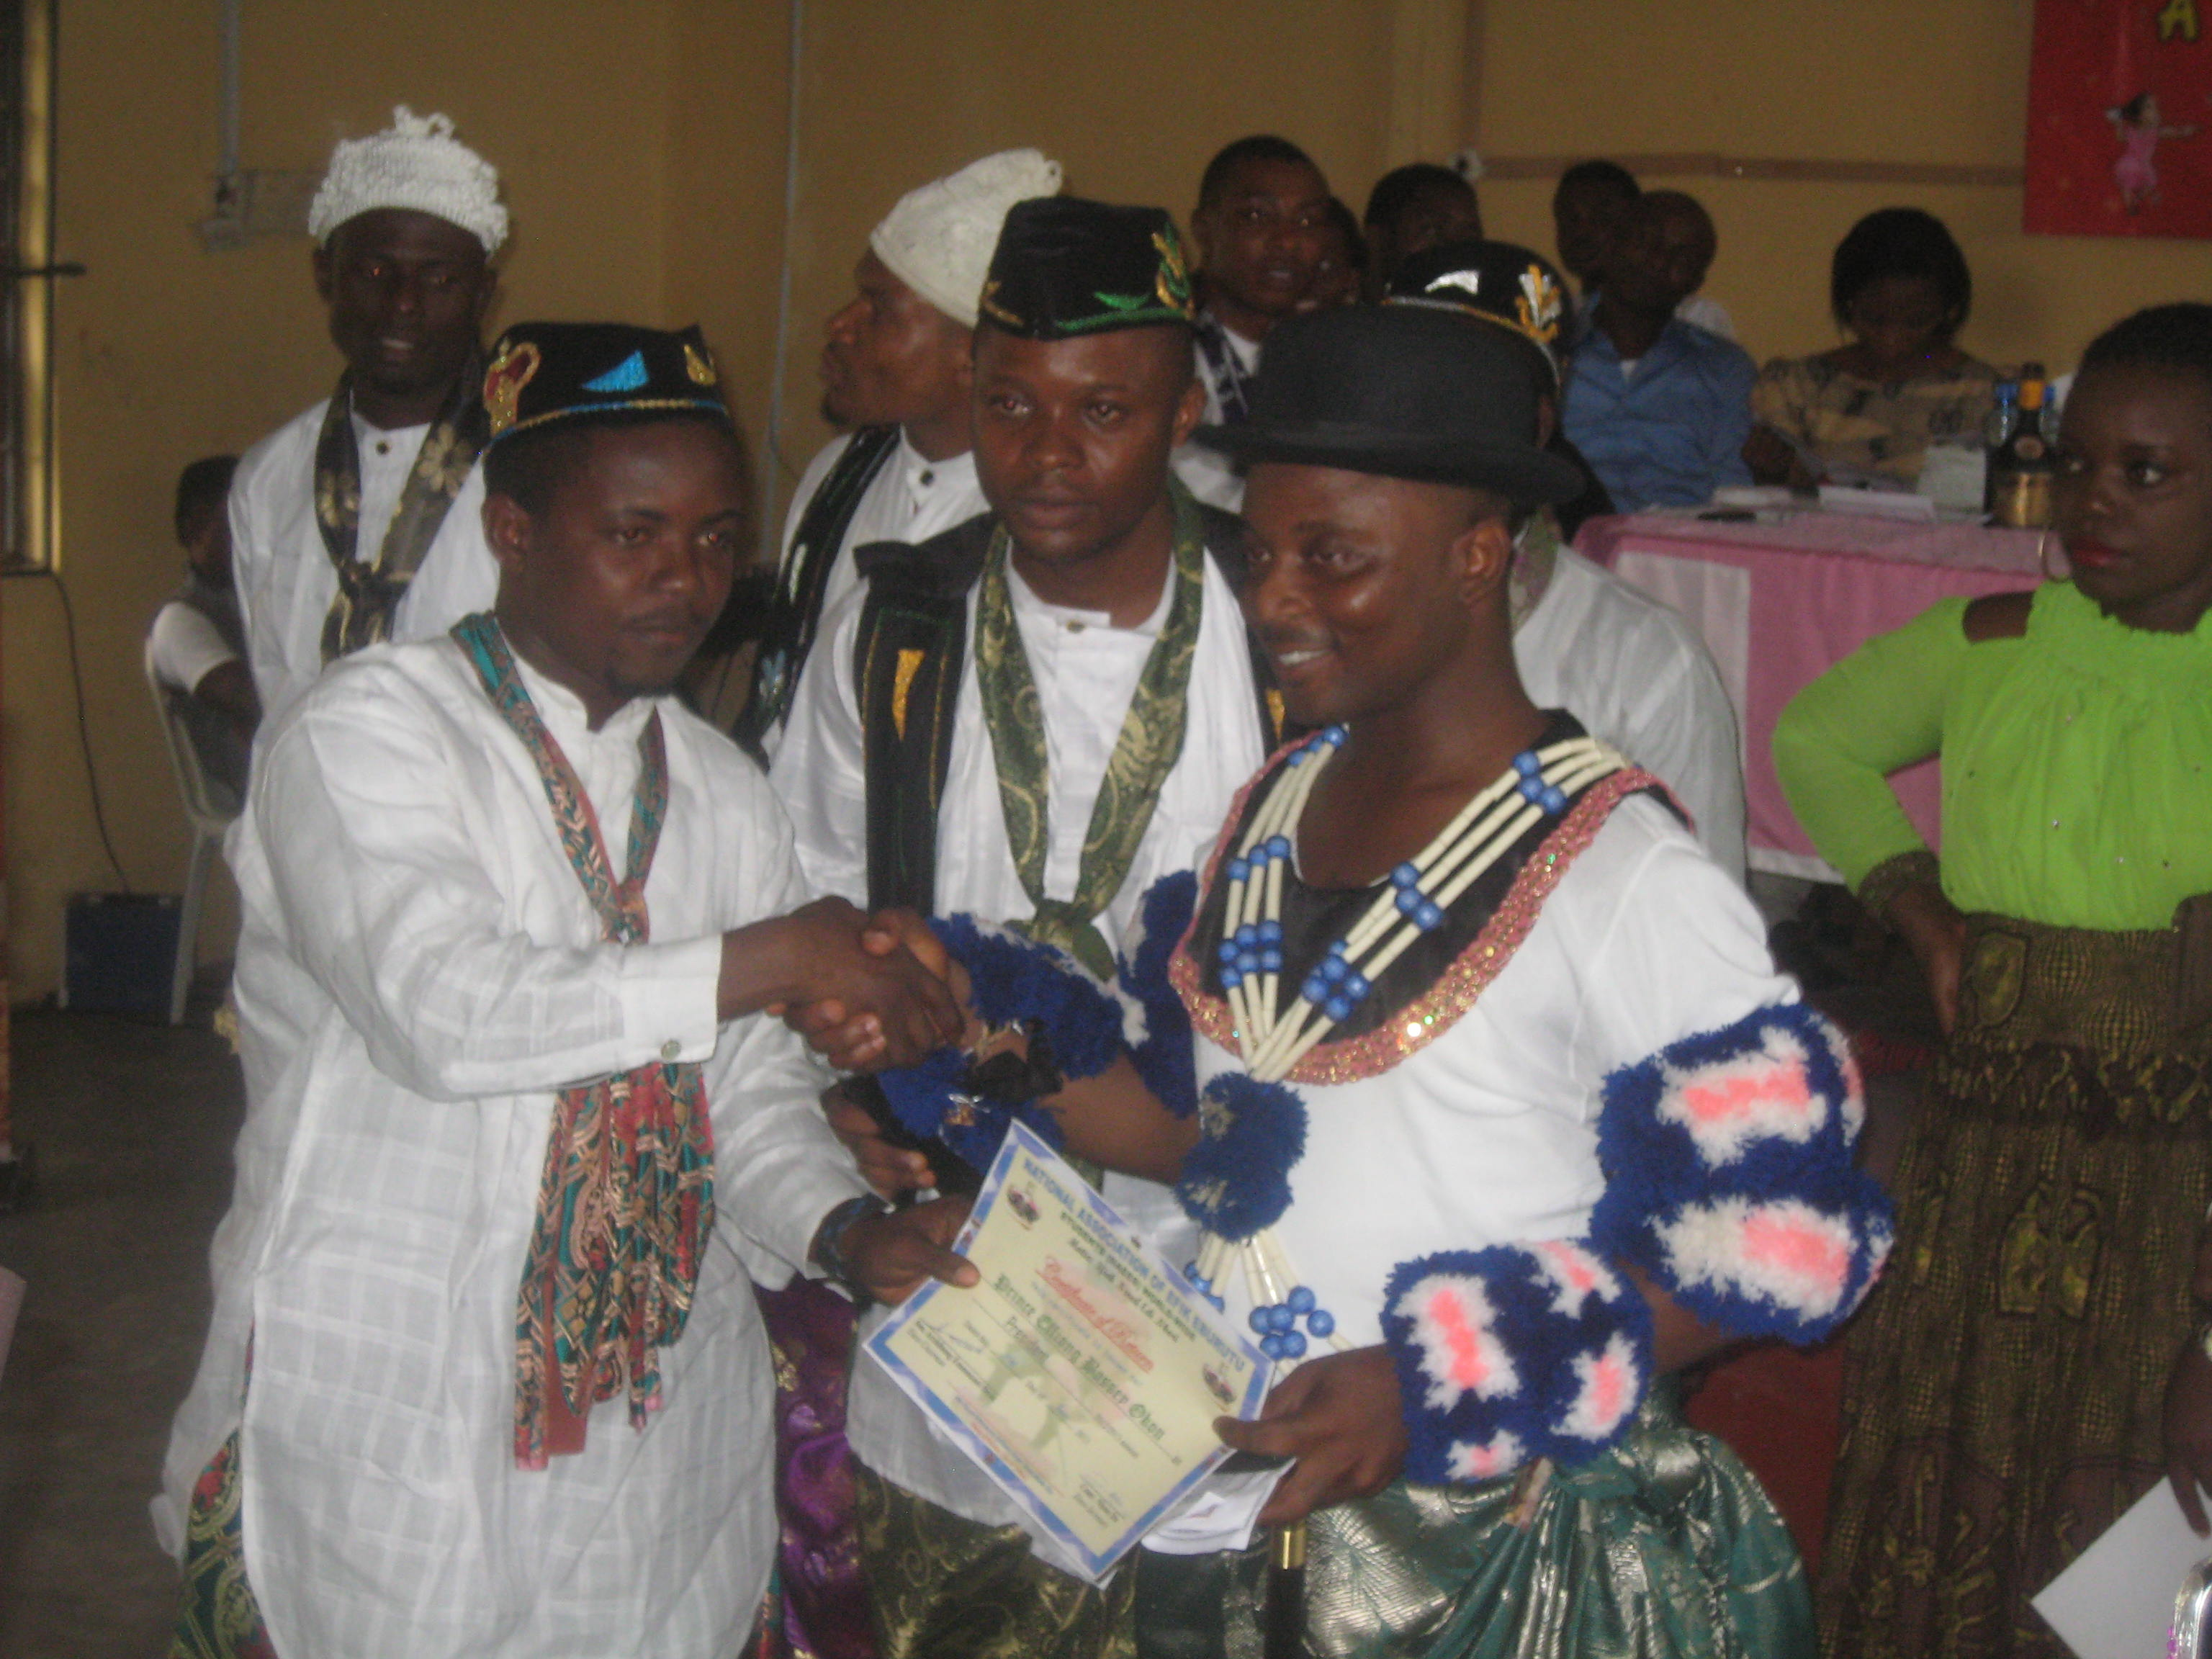 The outgoing president of the Efik Students Union presenting a certificate to the new president